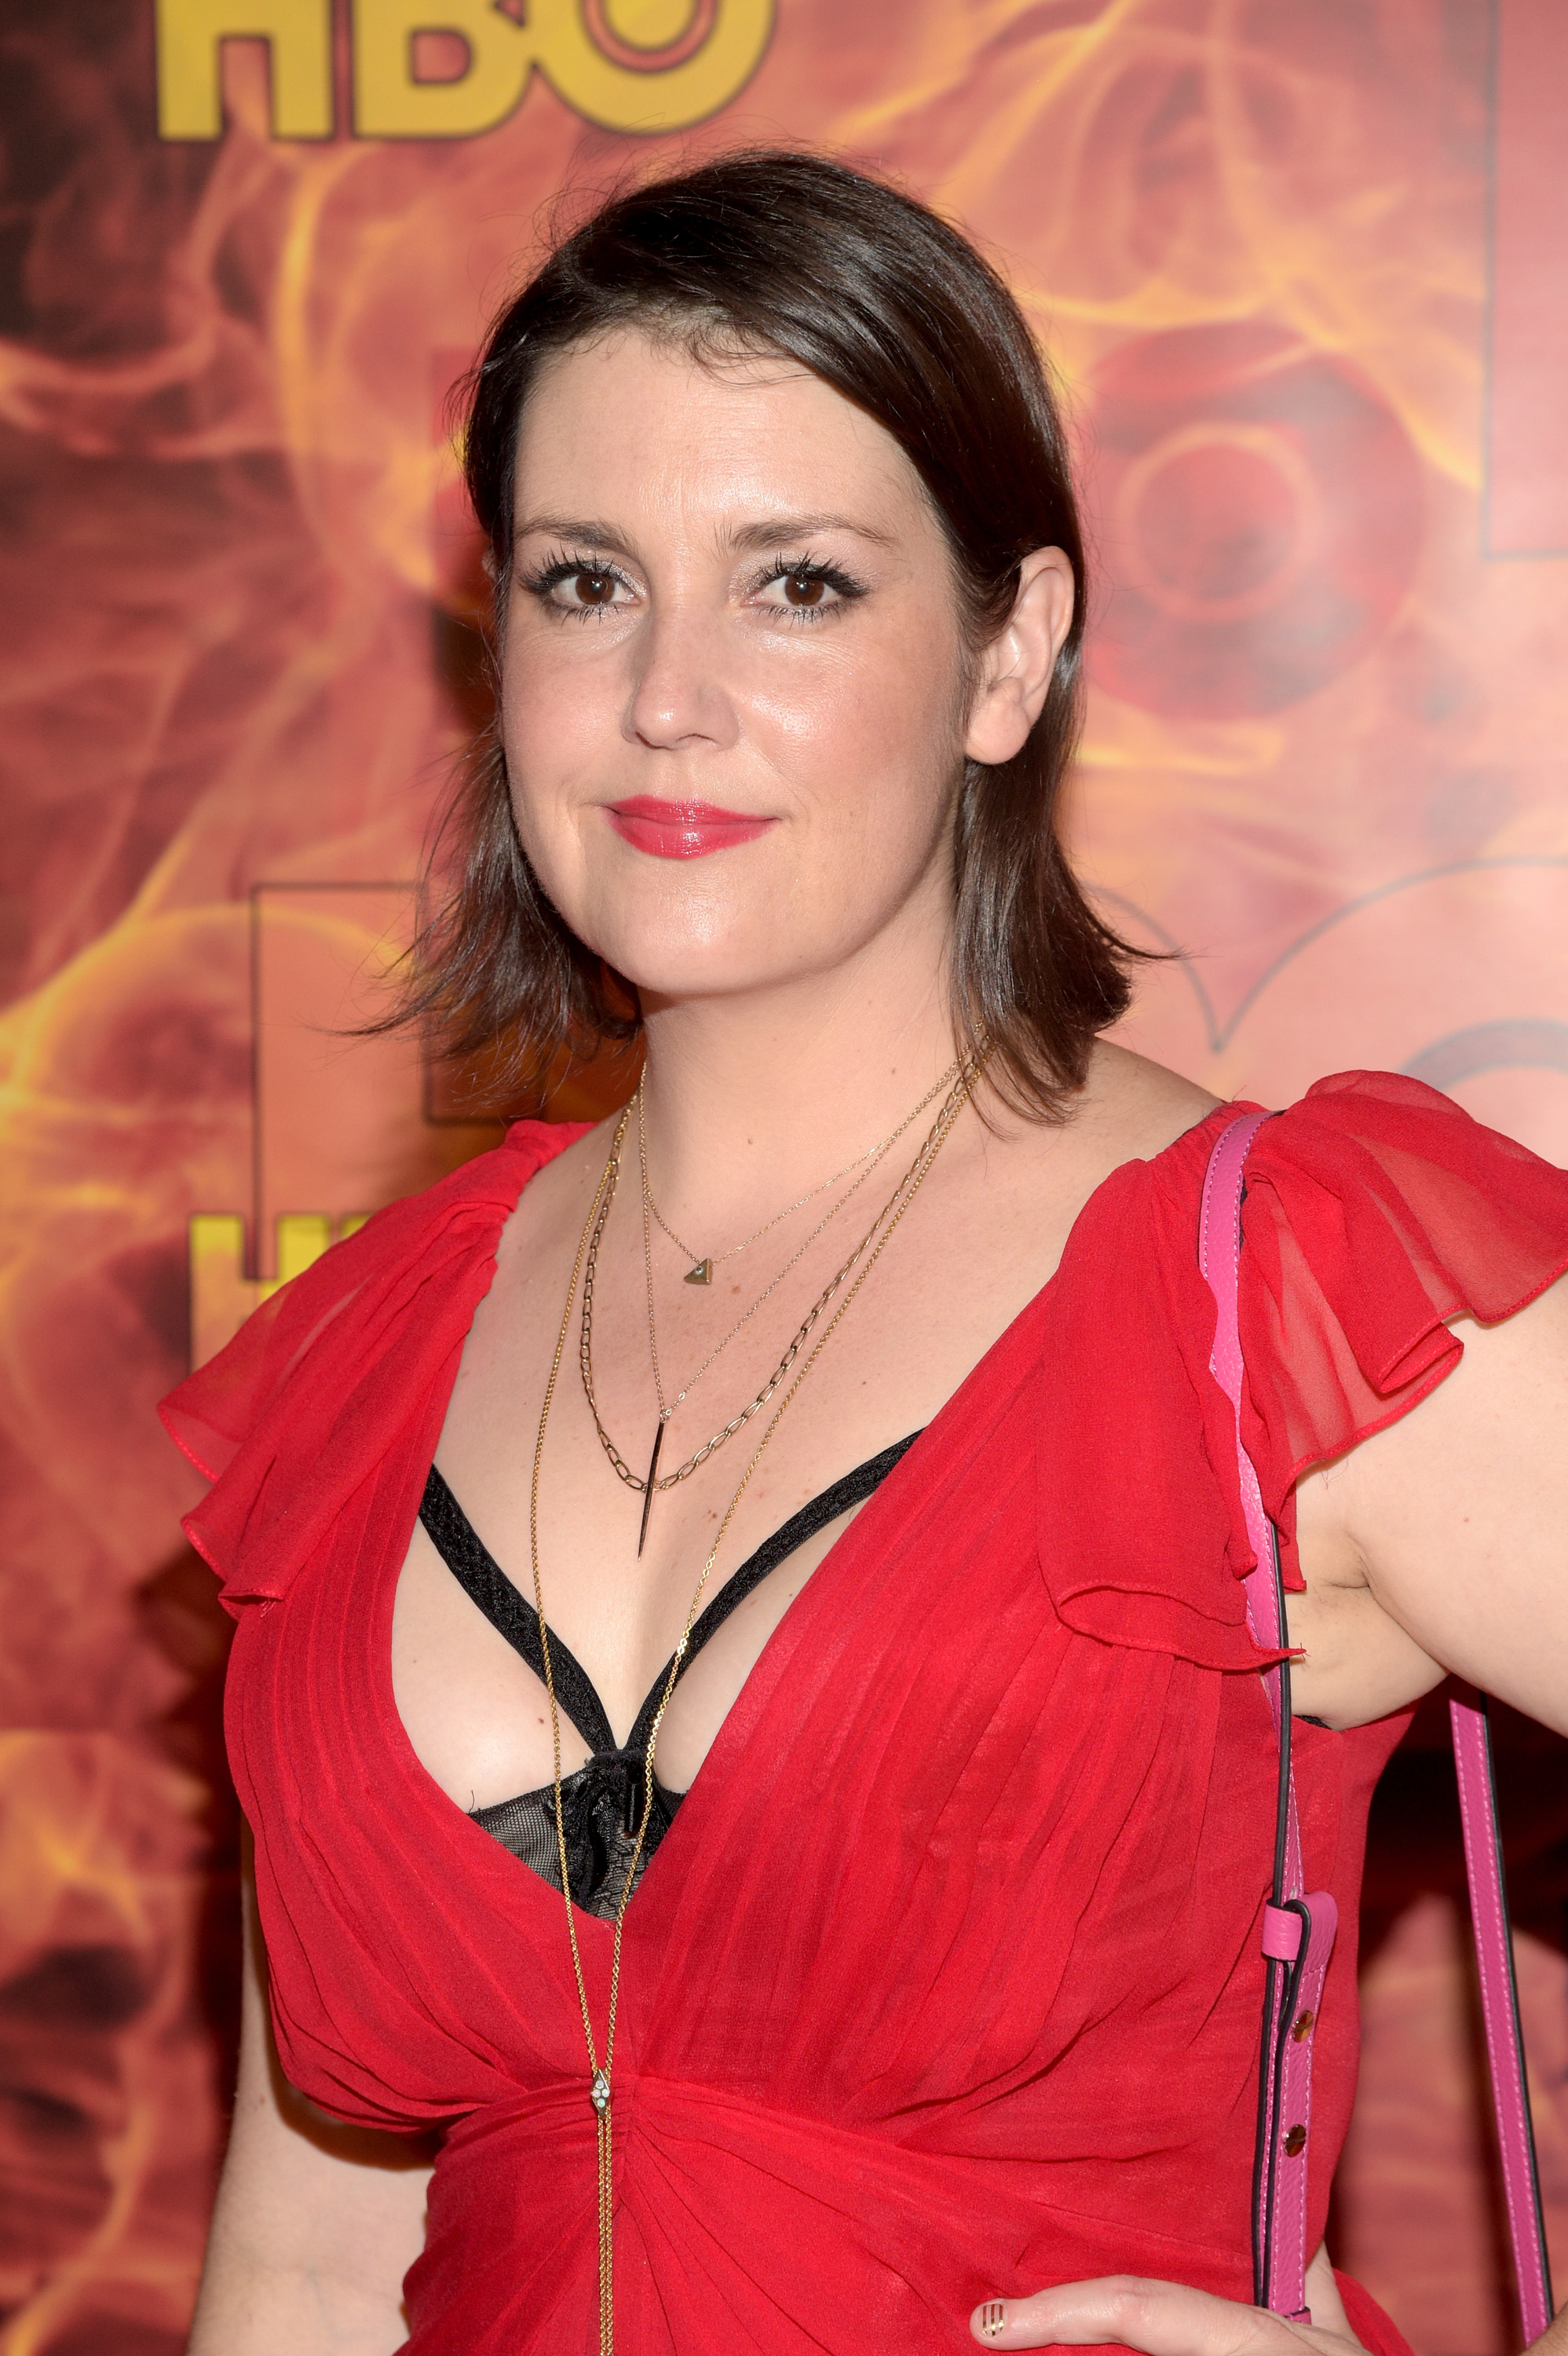 Photos Melanie Lynskey nudes (17 photo), Sexy, Hot, Instagram, panties 2015